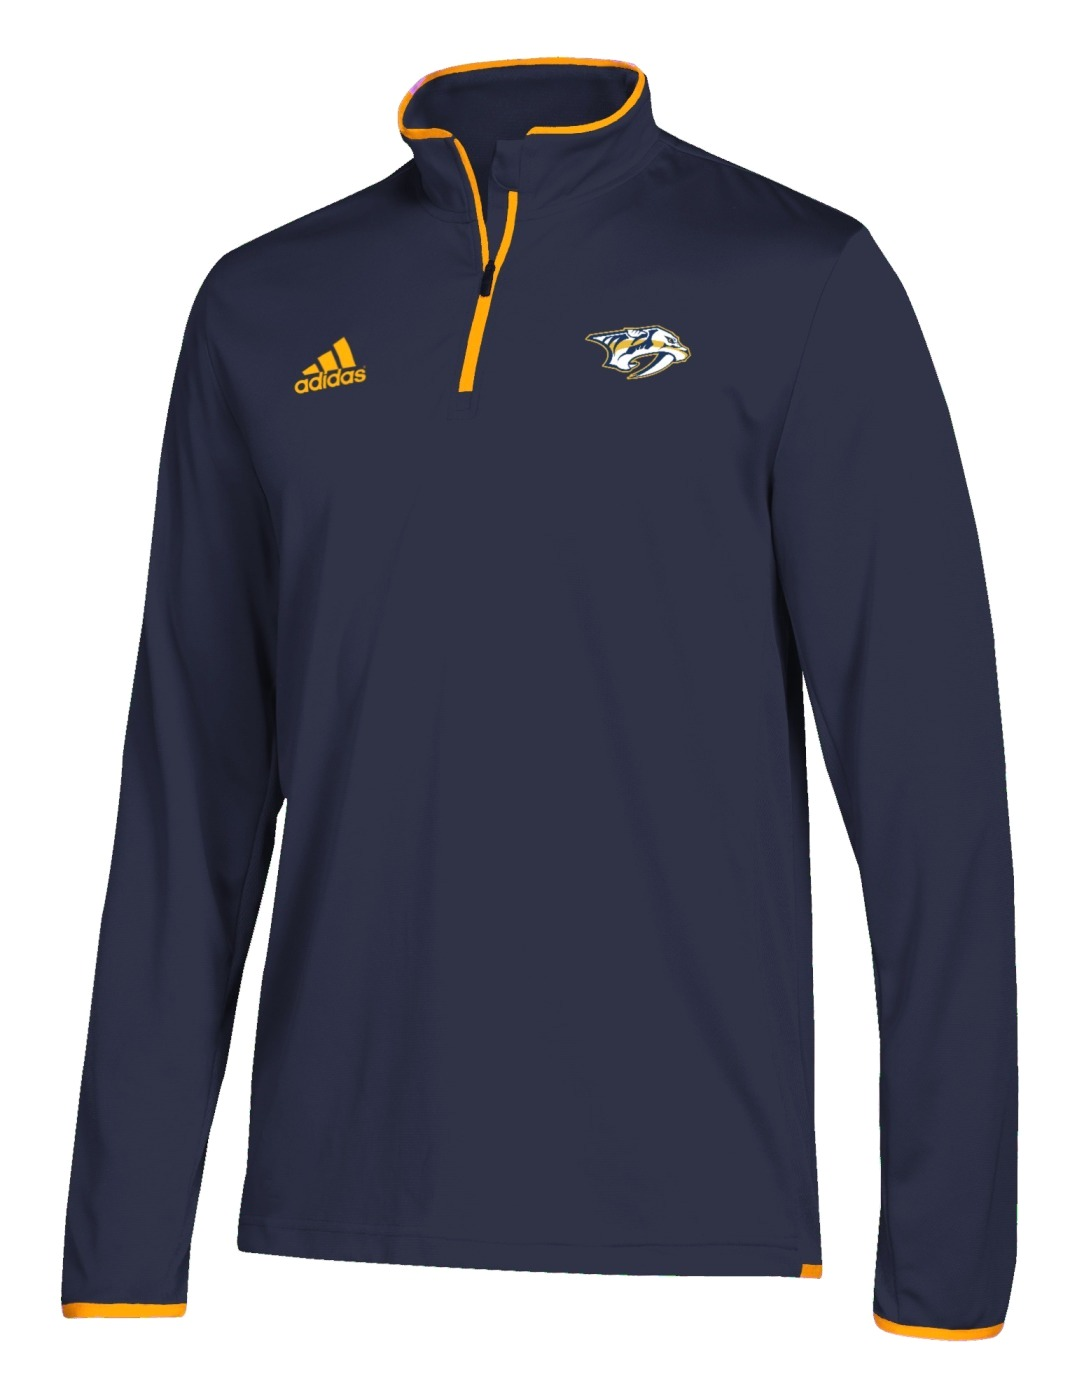 Nashville Predators Adidas NHL Men's 2018 Authentic Pro 1/4 Zip Wind Shirt